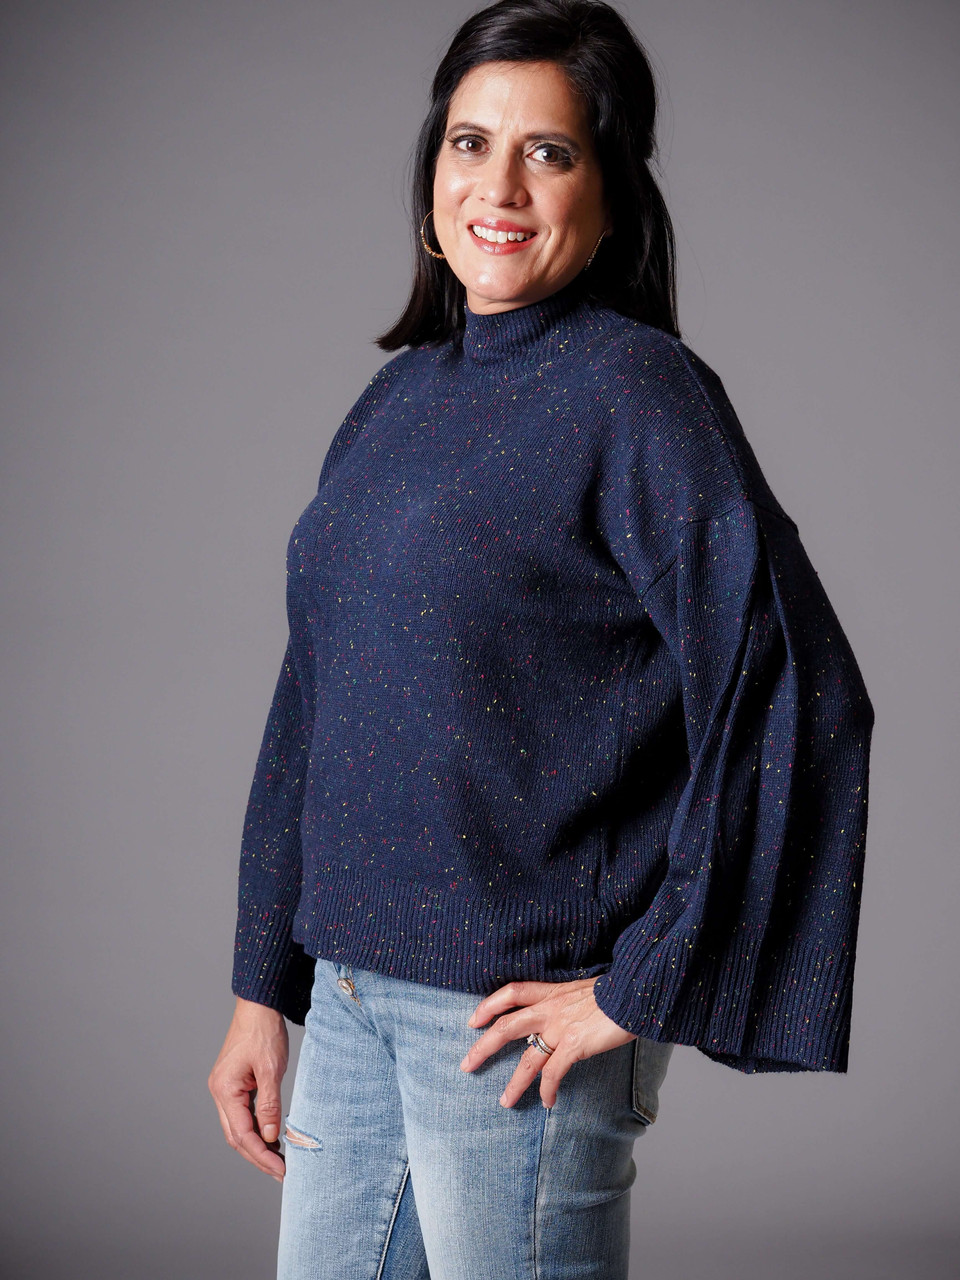 navy blue mock turtleneck confetti sweater